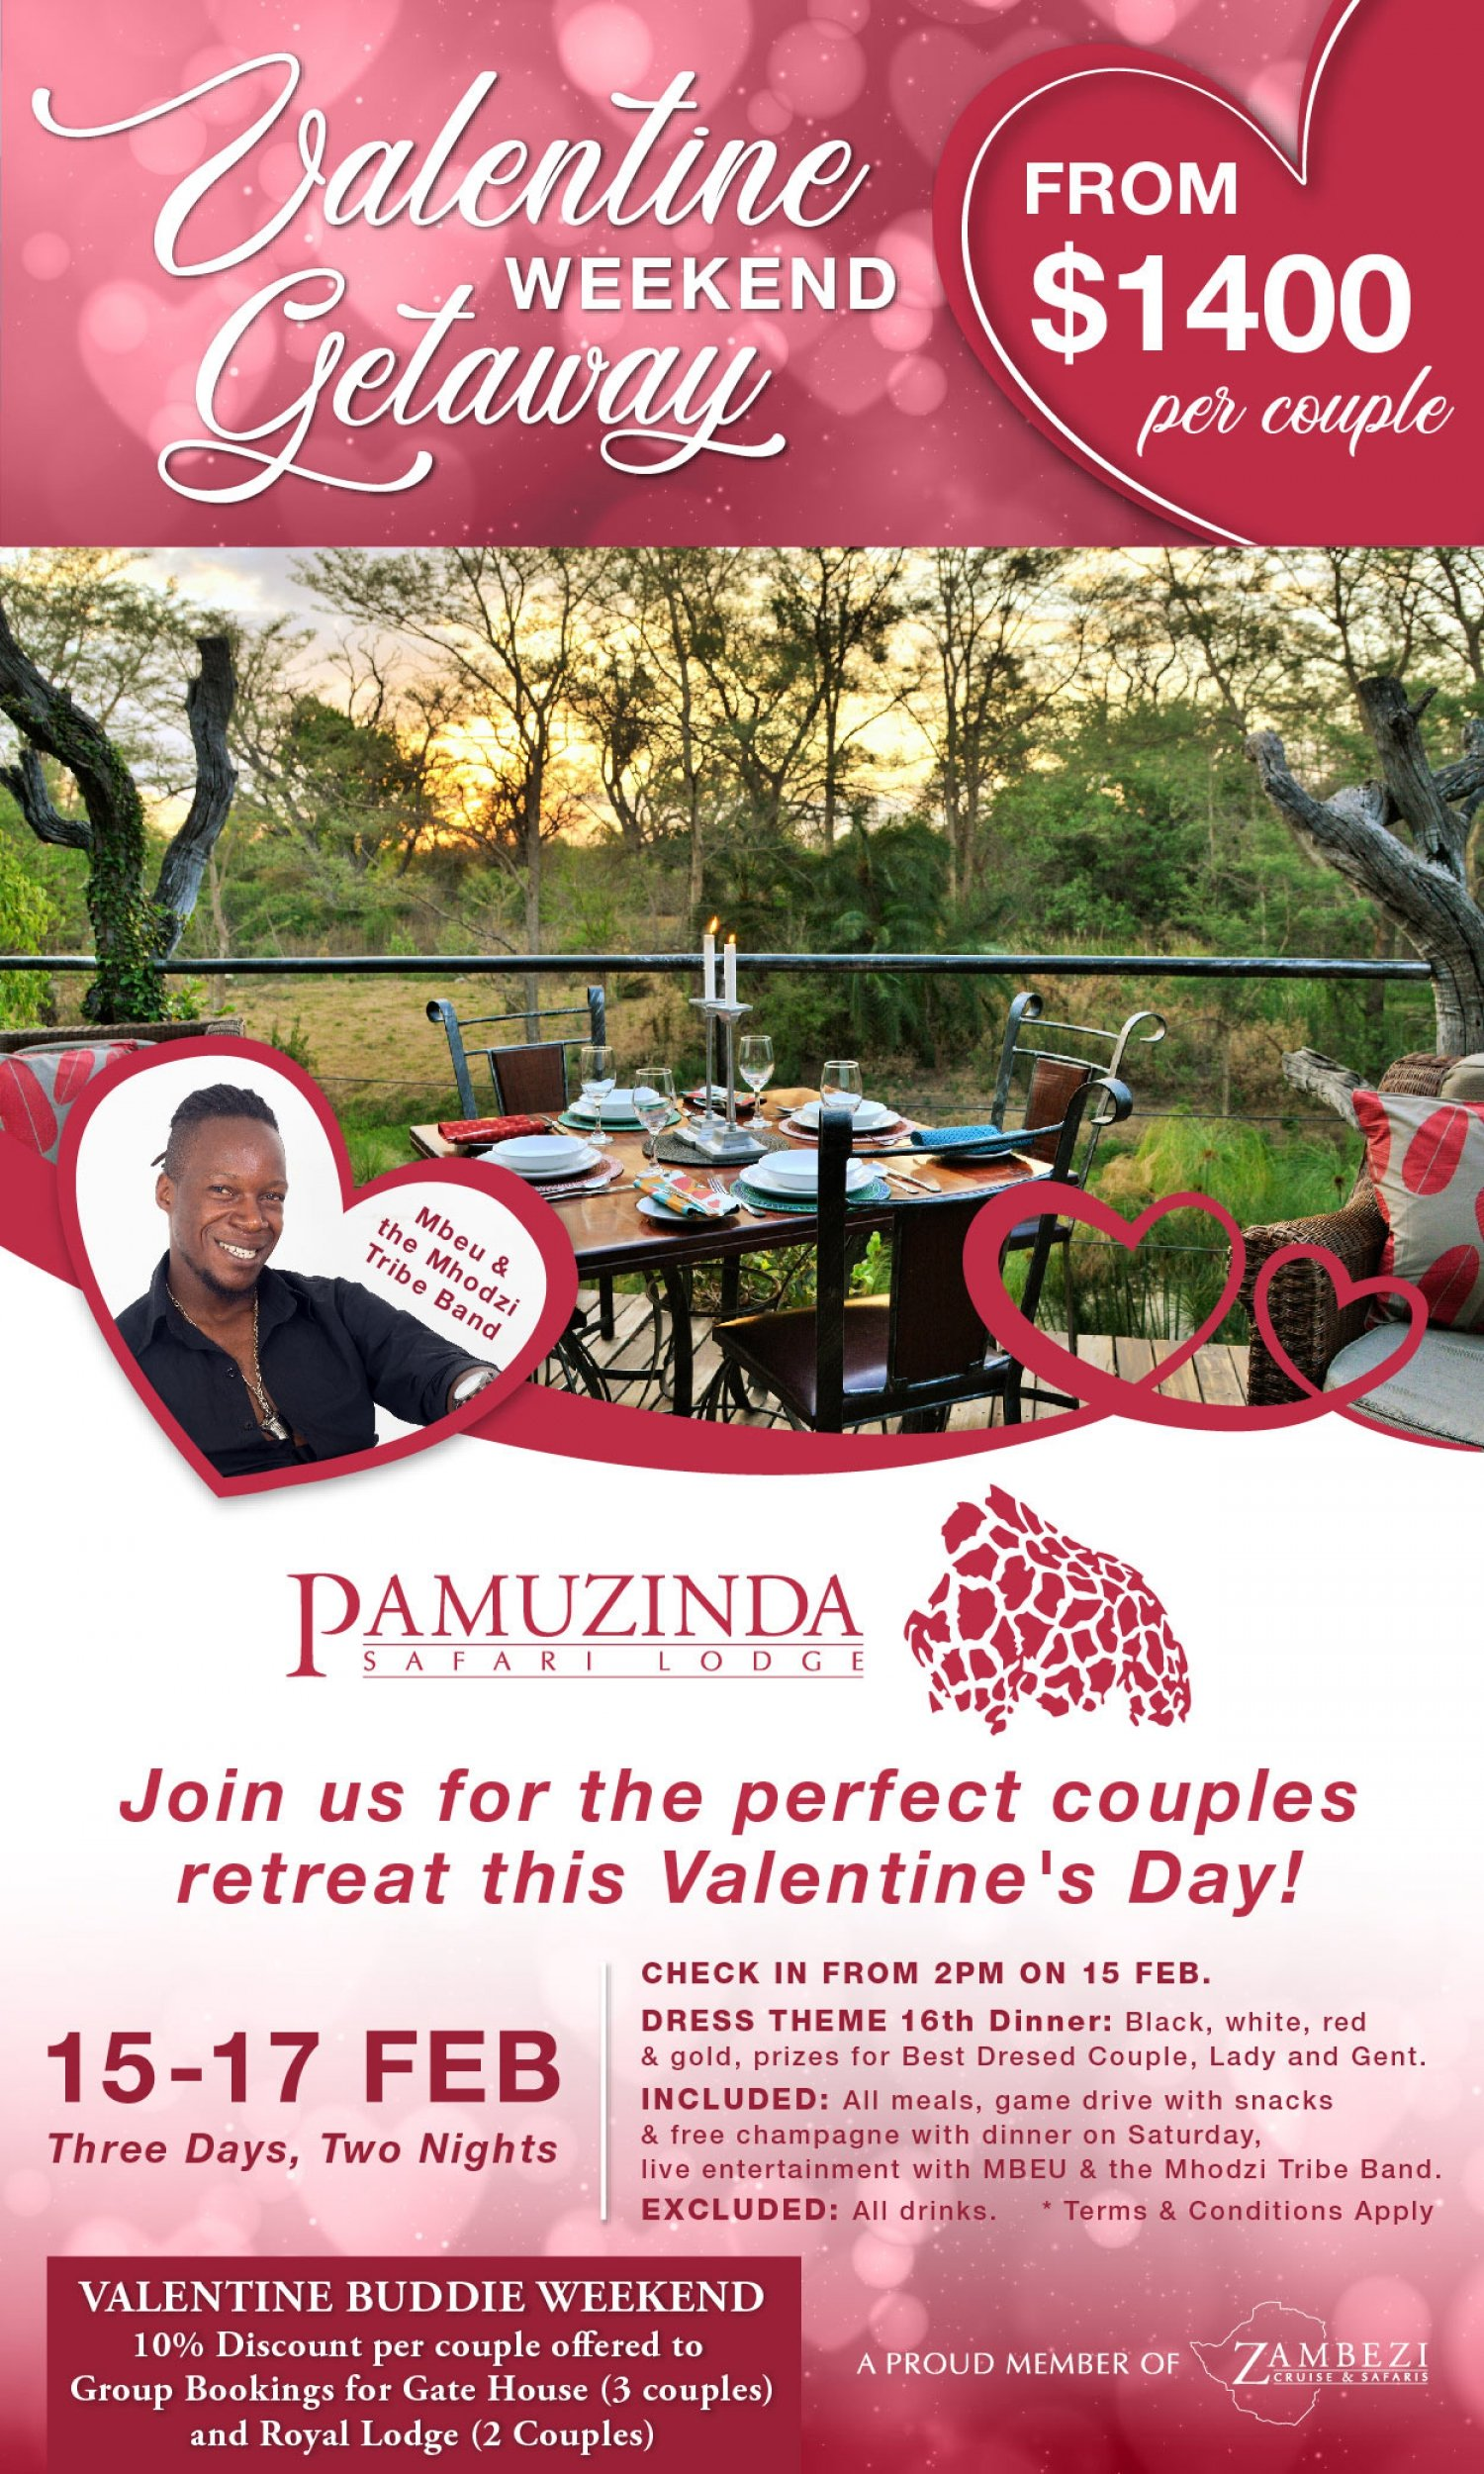 Pamuzinda Safari Lodge Valentines Special Weekend